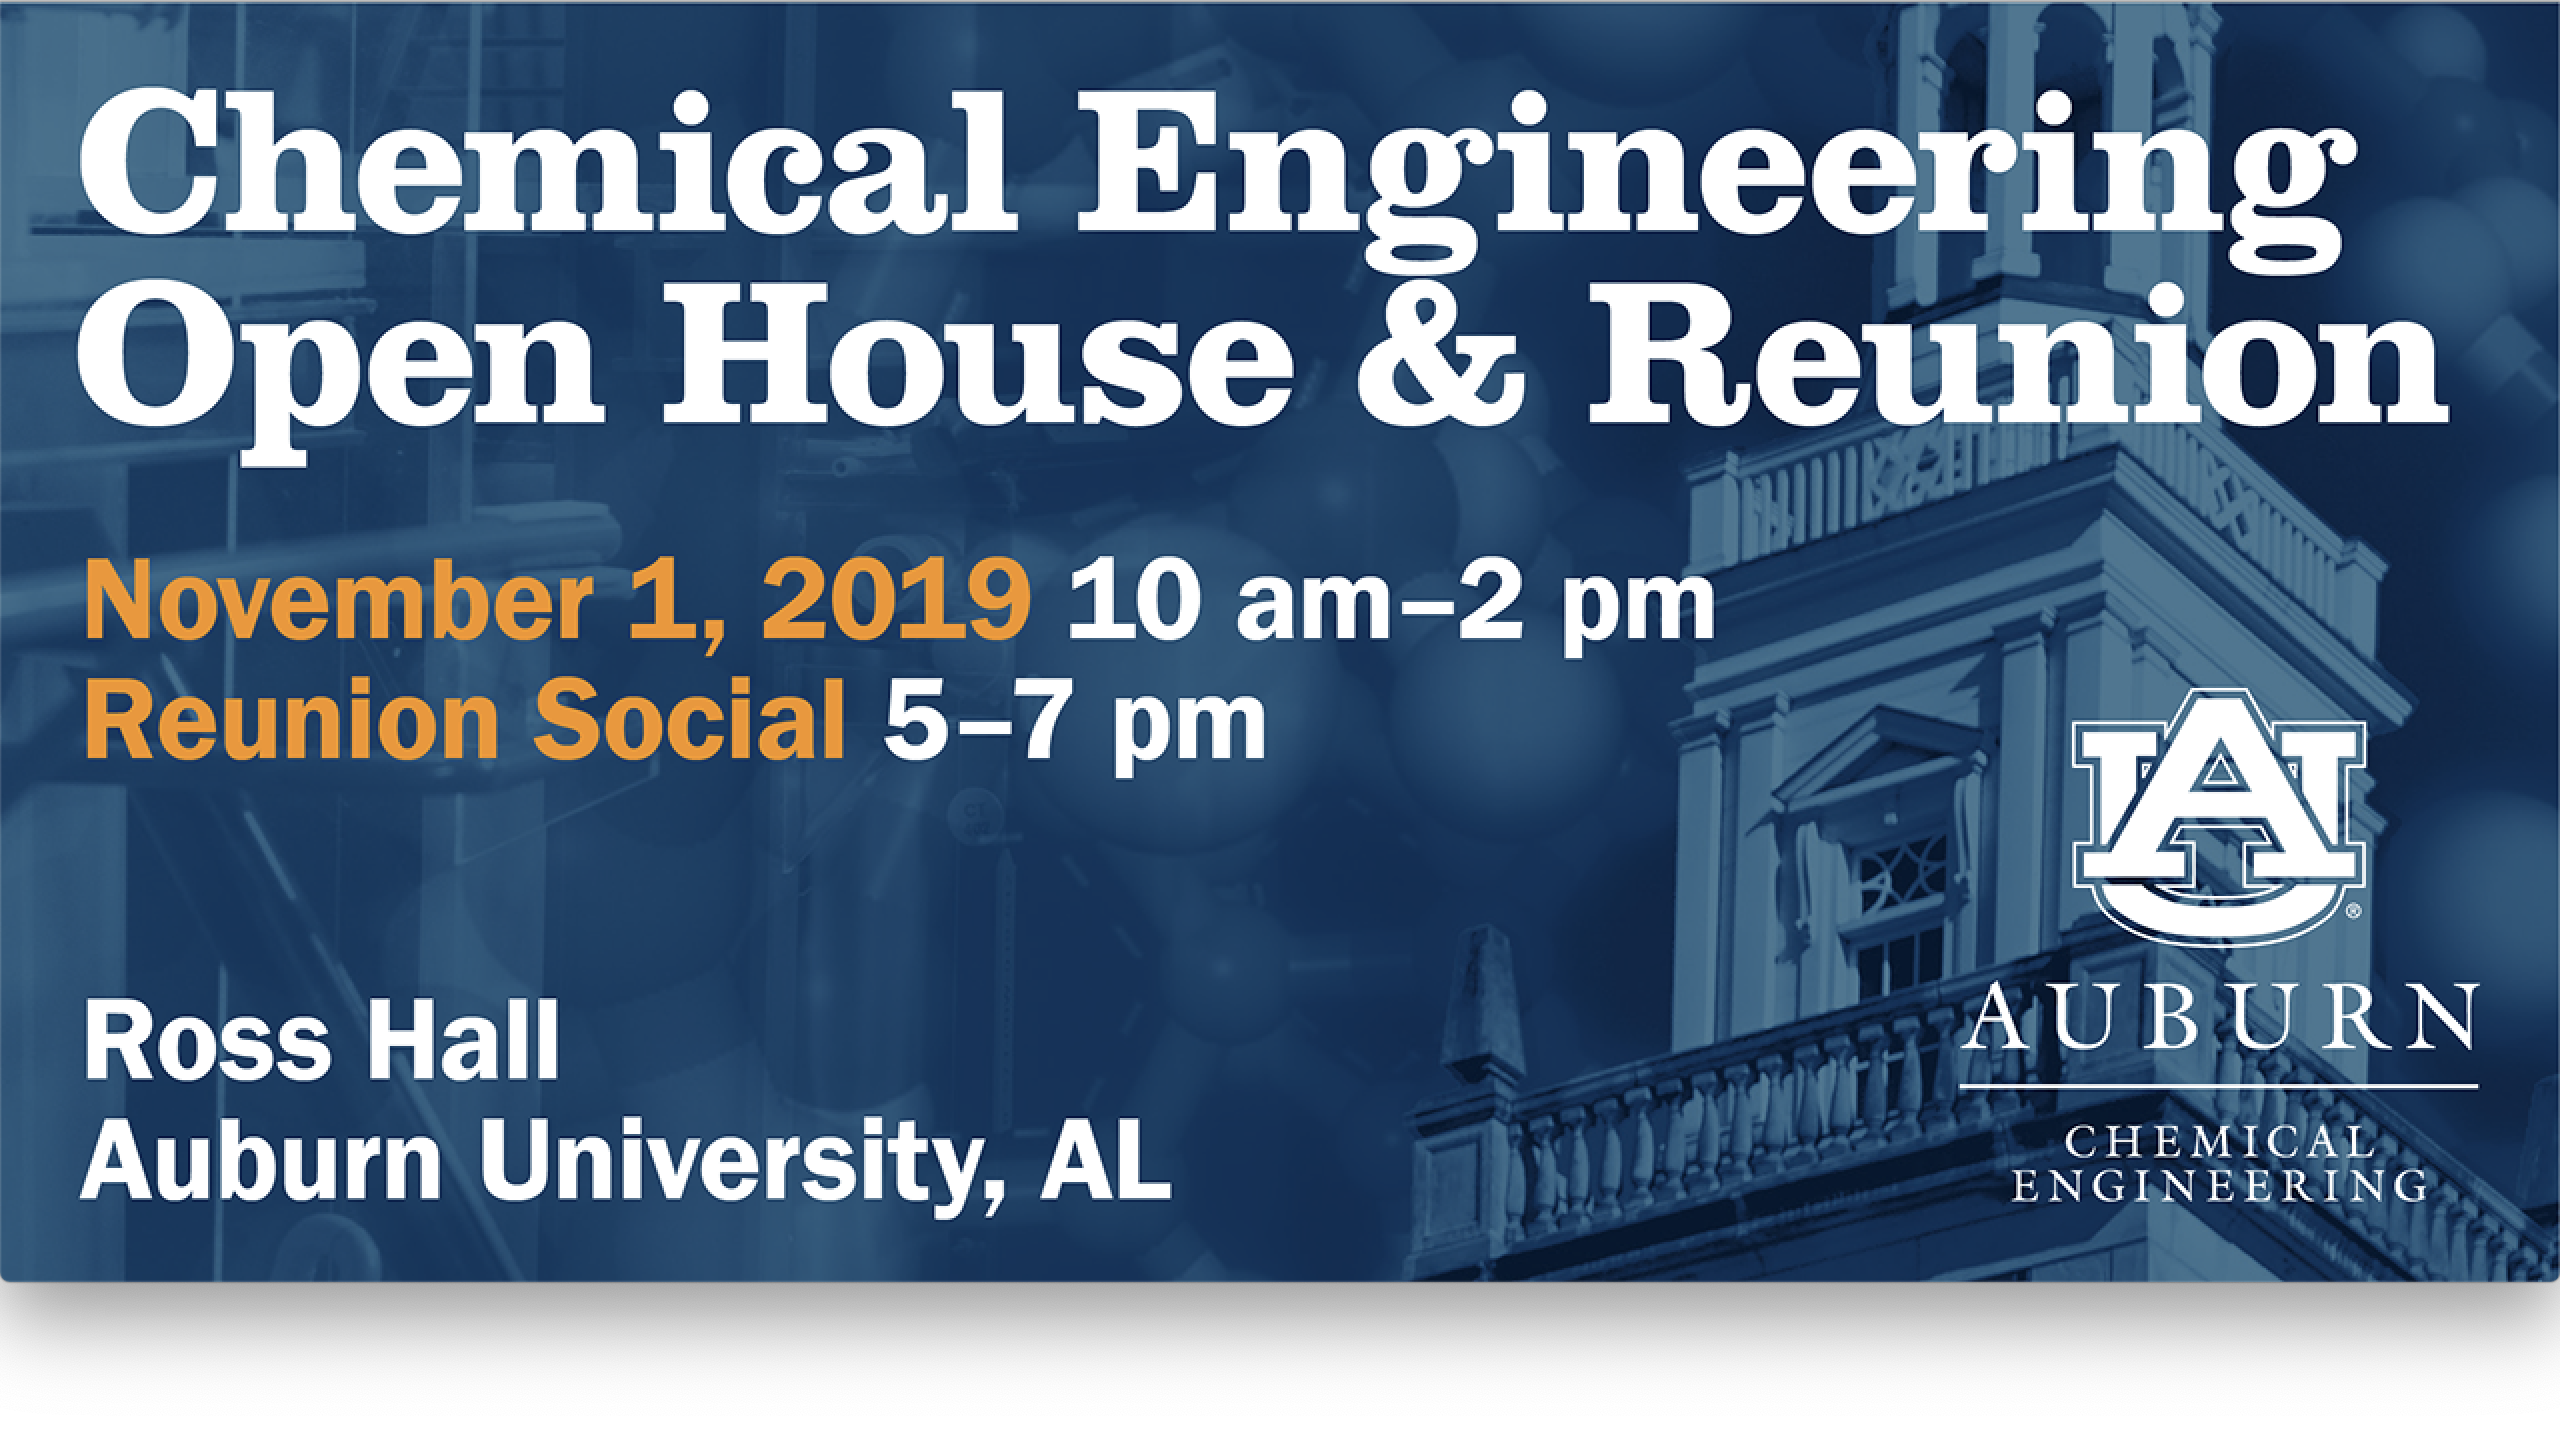 The Department of Chemical Engineering will host its 2019 Open House event on Nov. 1 from 10 a.m. to 2 p.m. at Ross Hall. The Open House will be followed by the Reunion Social, which will take place at the Auburn University Hotel and Dixon Conference Center from 5 p.m. to 7 p.m.